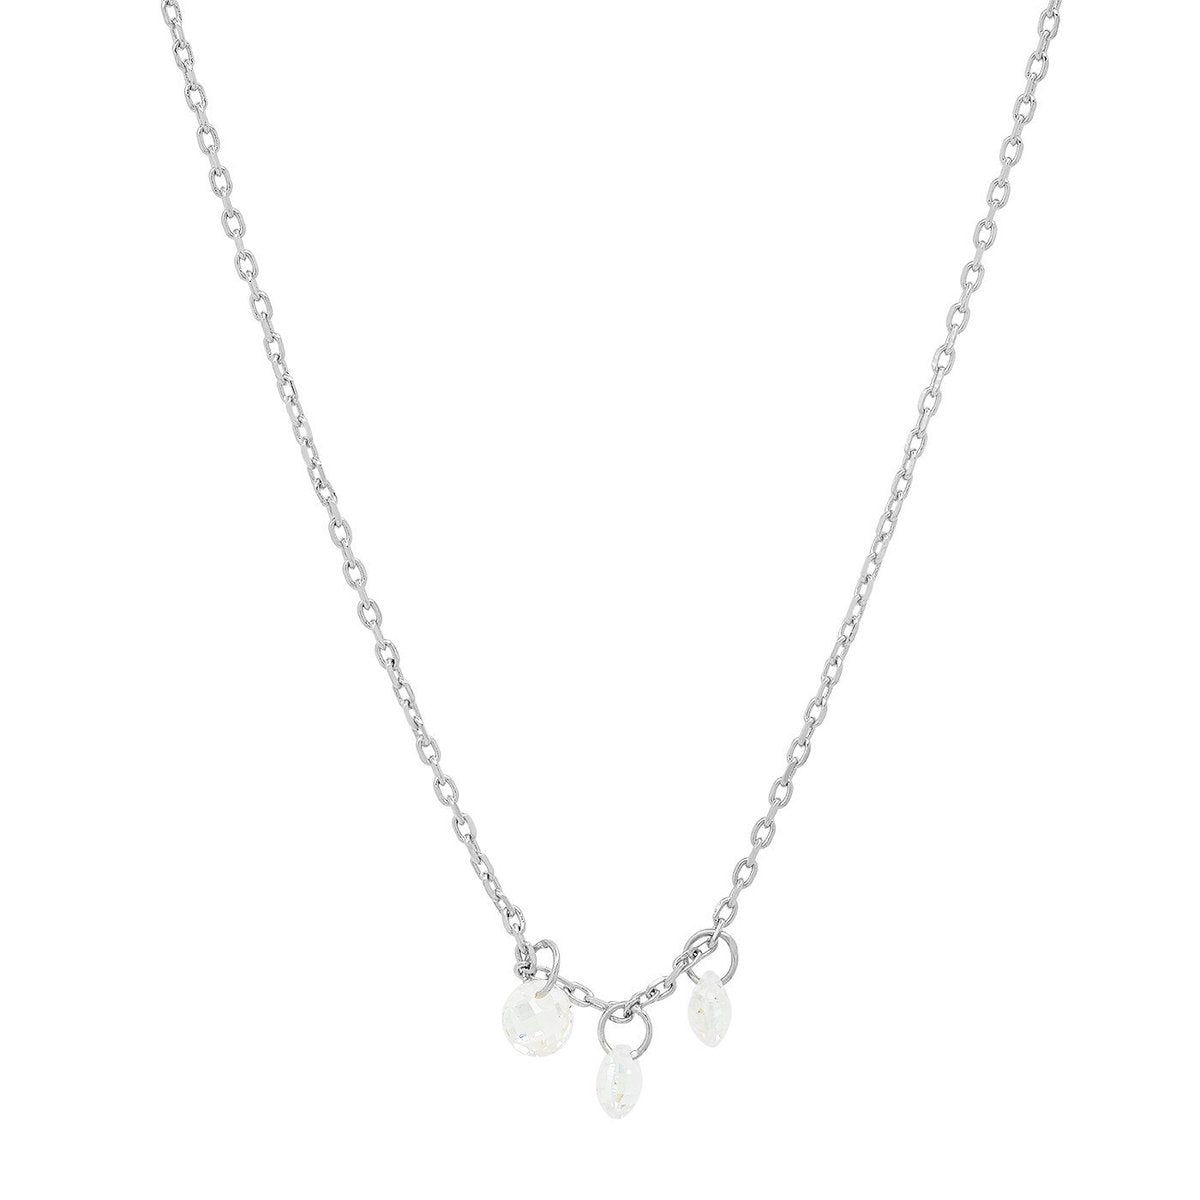 Tai - Necklace with Three Floating CZ's (silver)